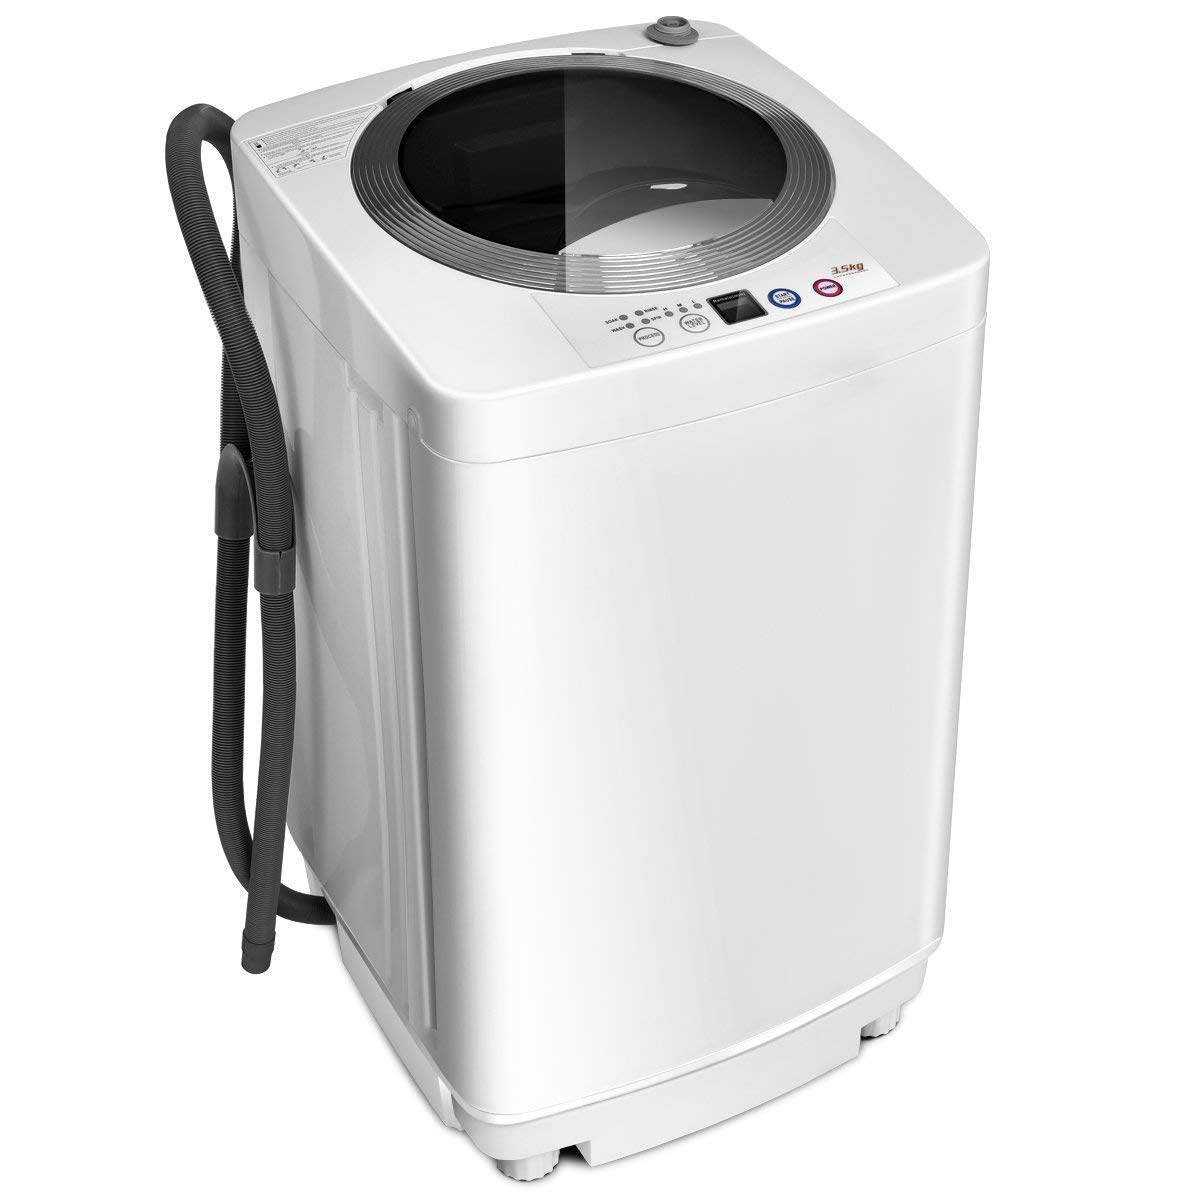 Giantex Portable Compact Full-Automatic Laundry 8 lbs Load Capacity Washing Machine Washer/Spinner W/Drain Pump by Giantex